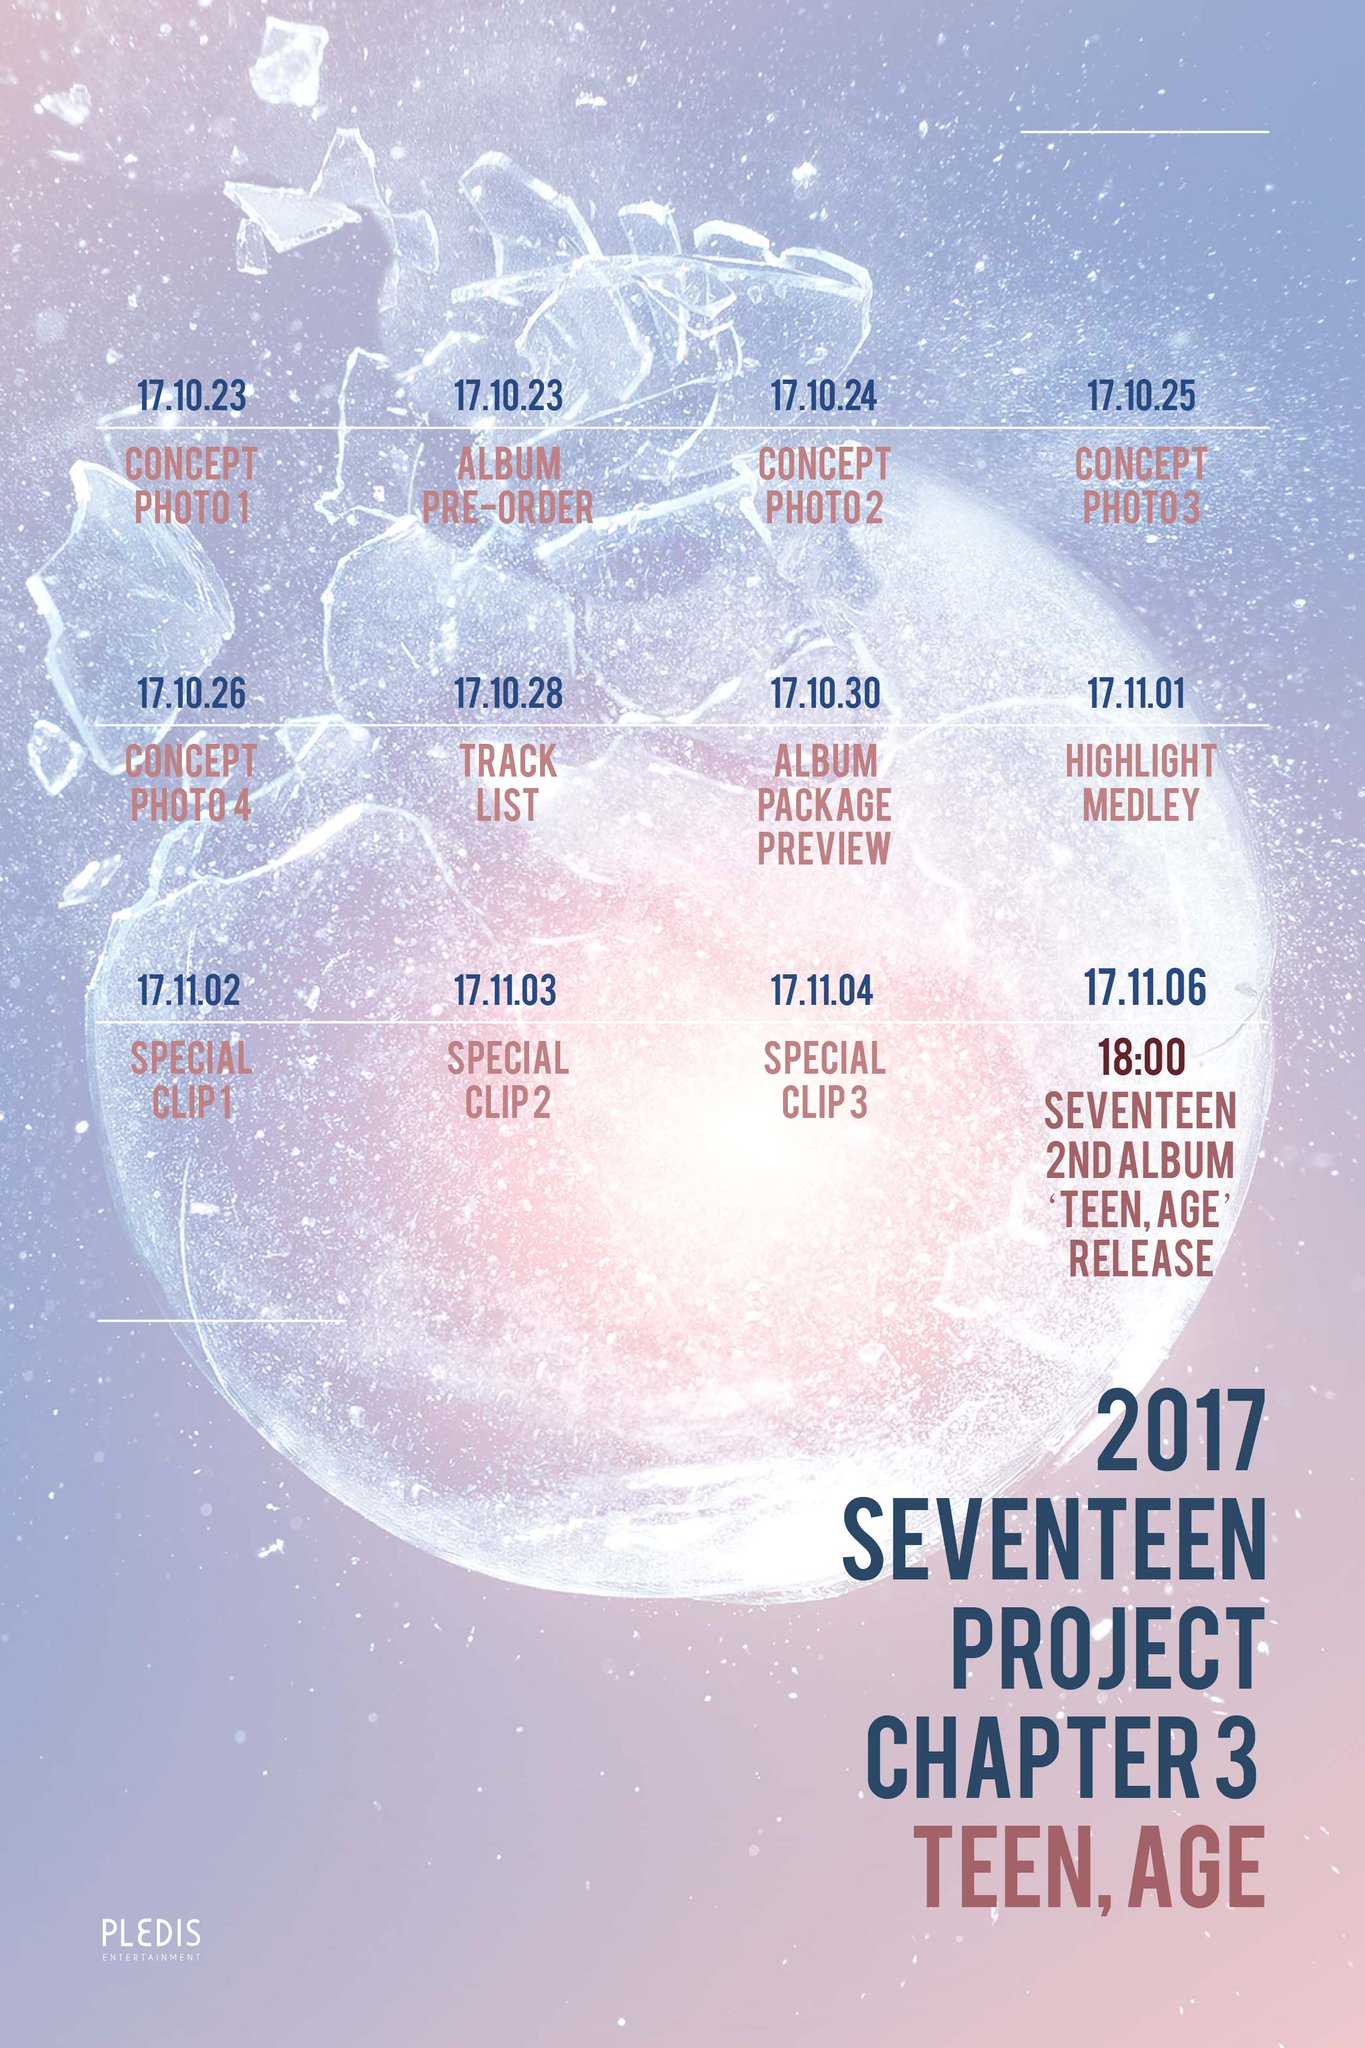 2017 SEVENTEEN PROJECT CHAPTER 3 'TEEN, AGE' TIMETABLE #SEVENTEEN #TEEN_AGE #20171106_6PM https://t.co/2rqnVAyMkG